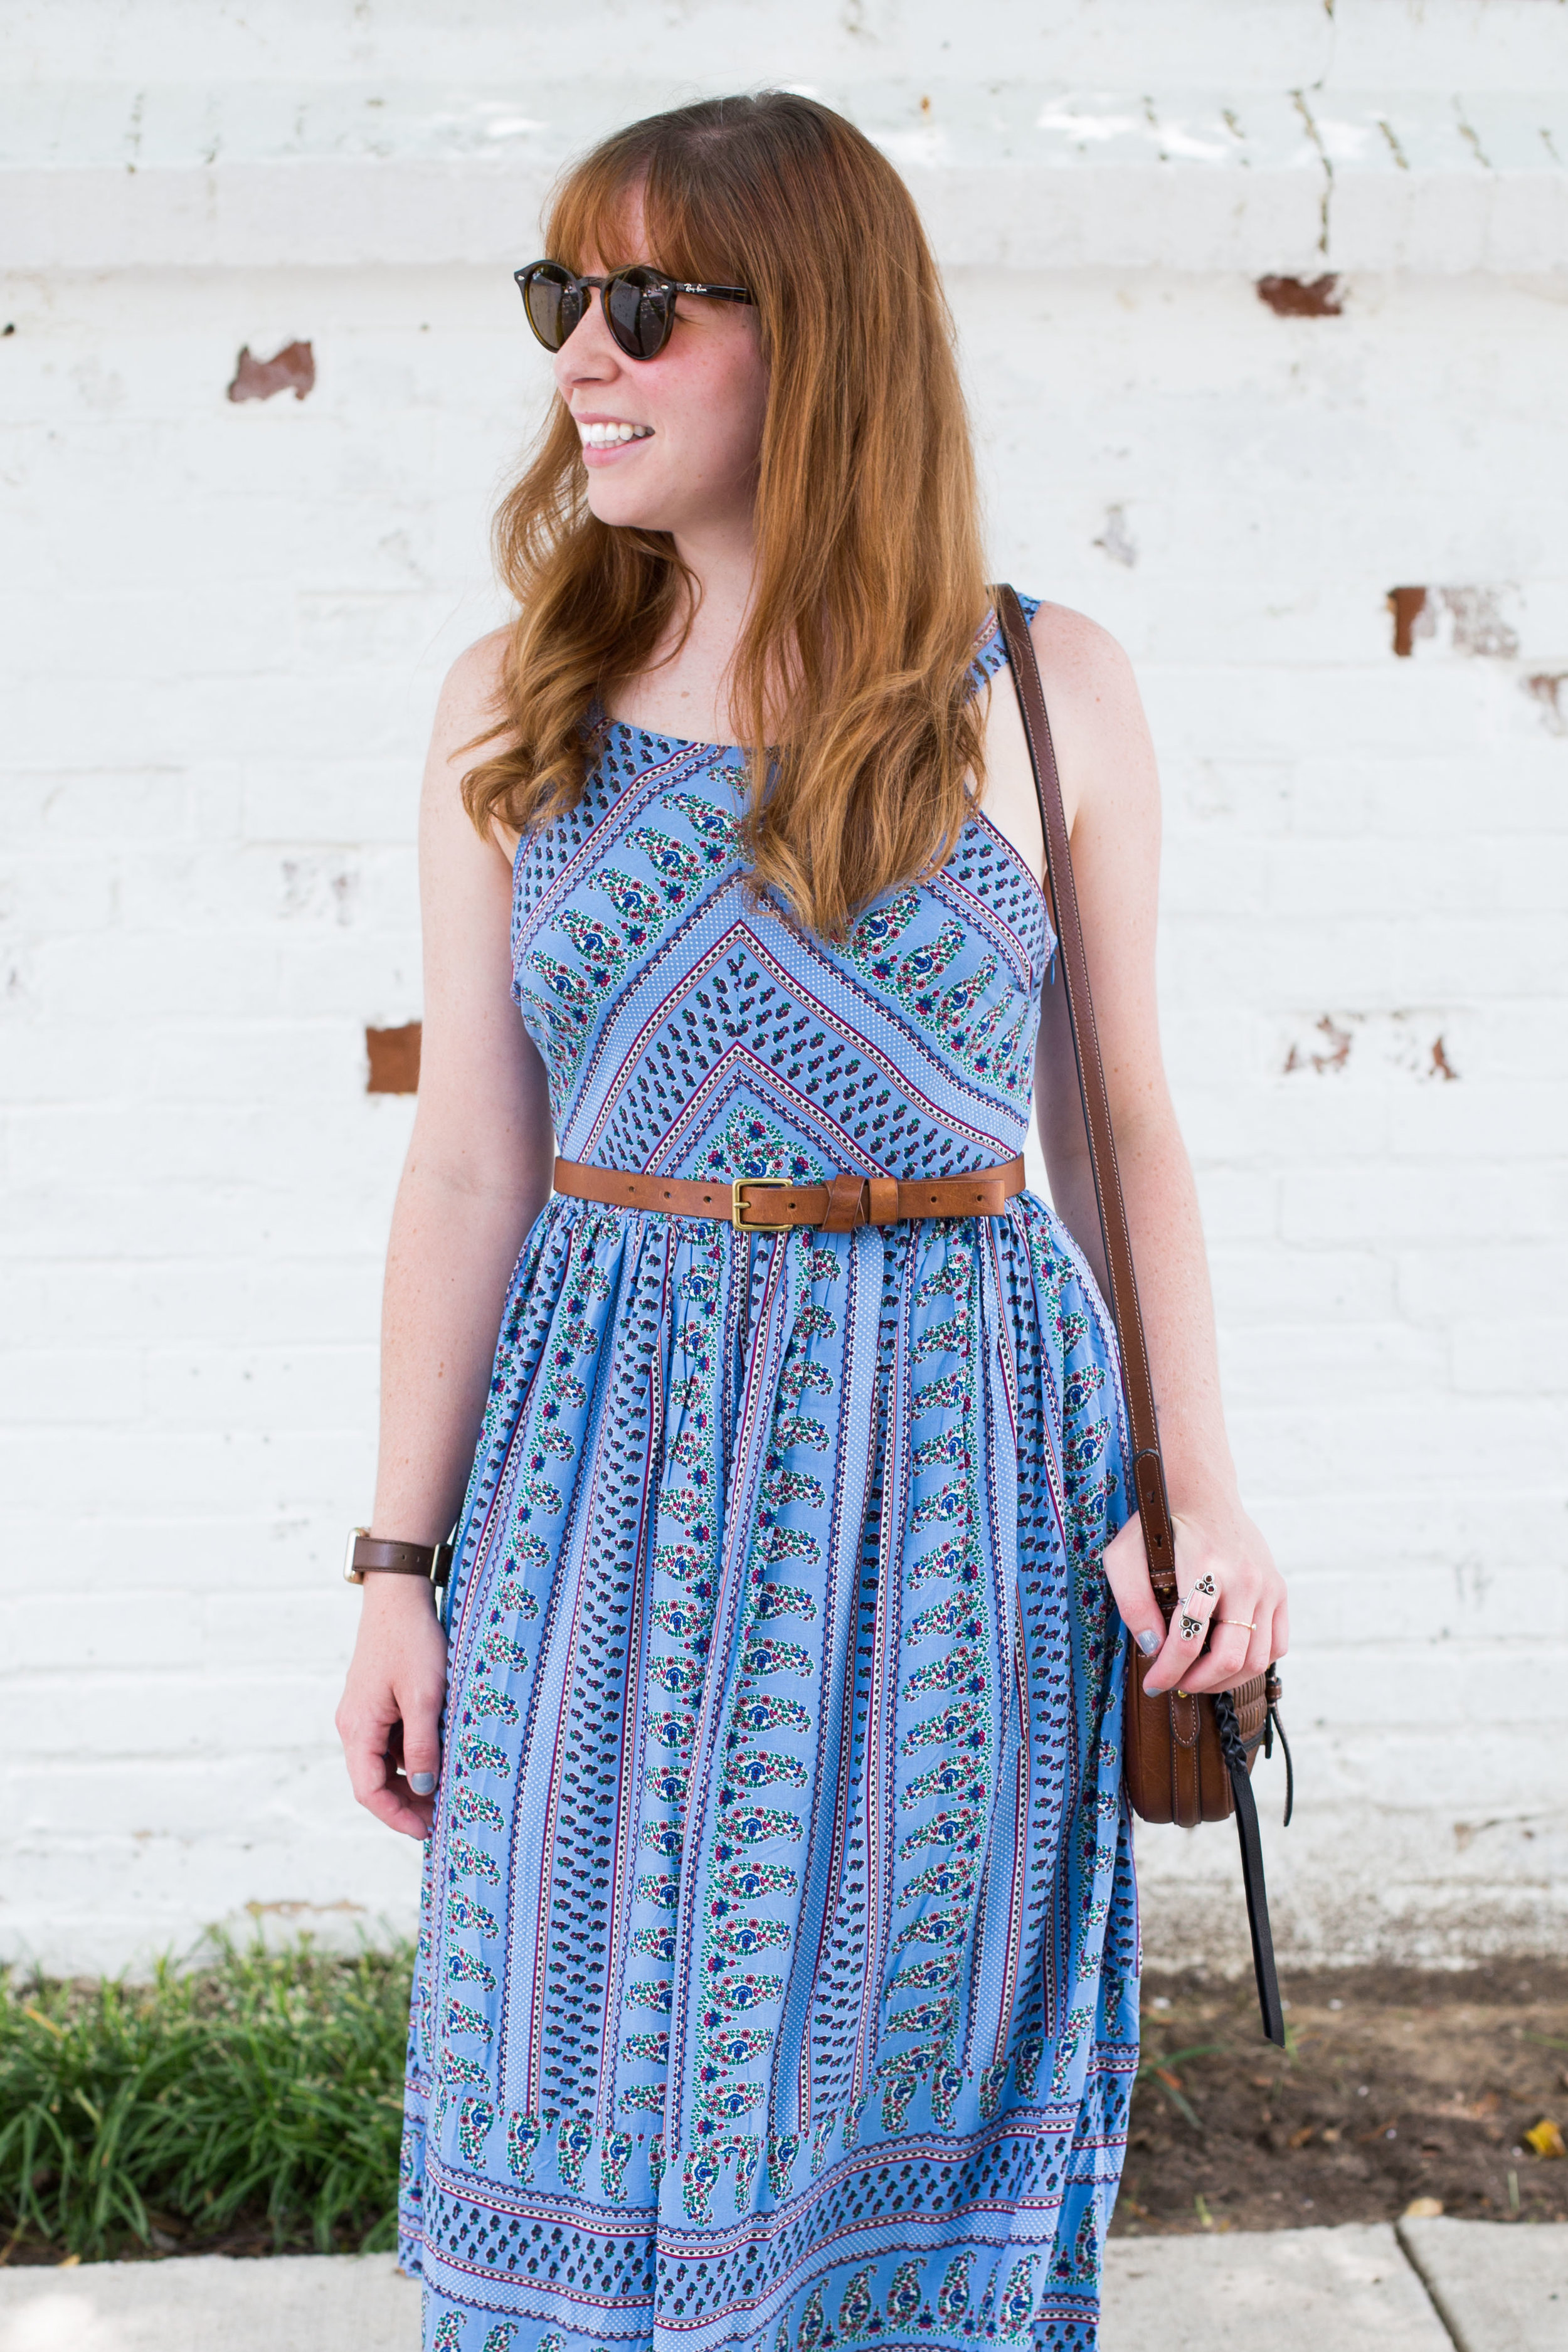 The perfect little blue summer sundress by Everly along with my favorite Fossil bag and Madewell belt.